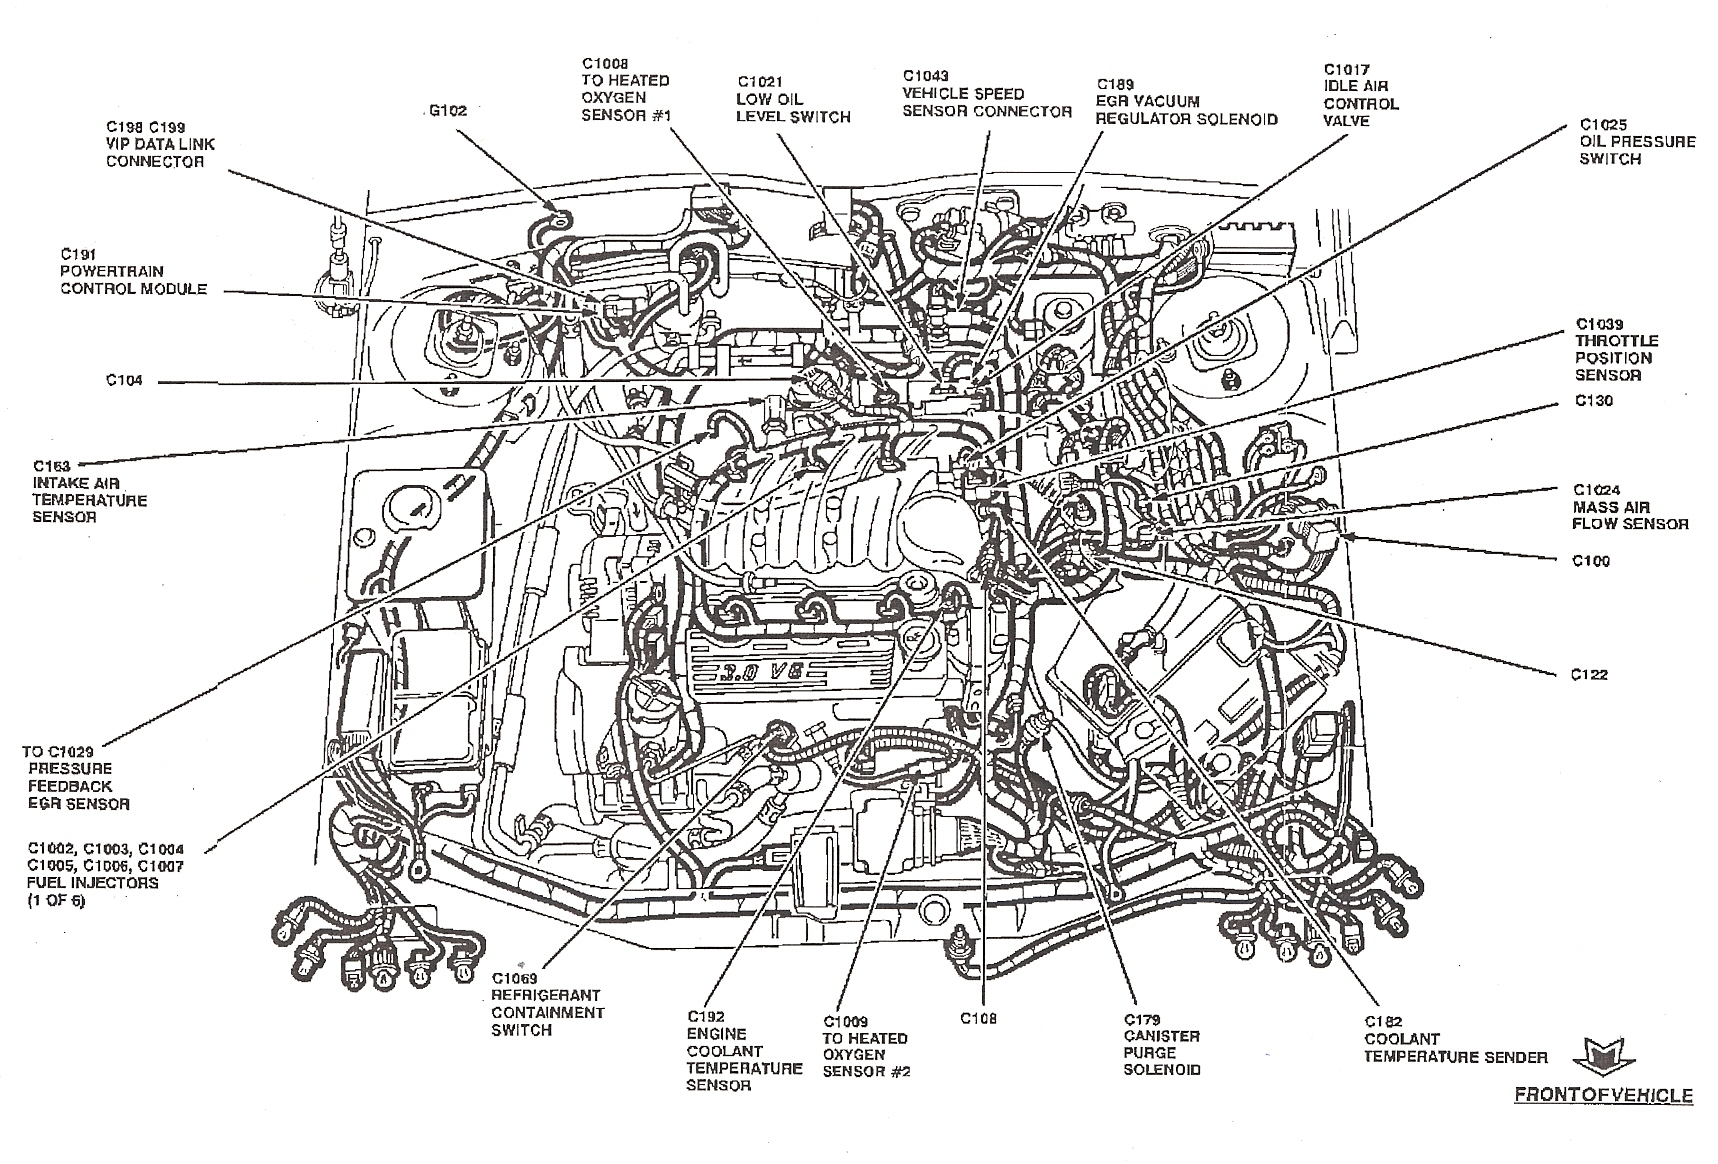 Ford Taurus Wiring Diagram Pictures